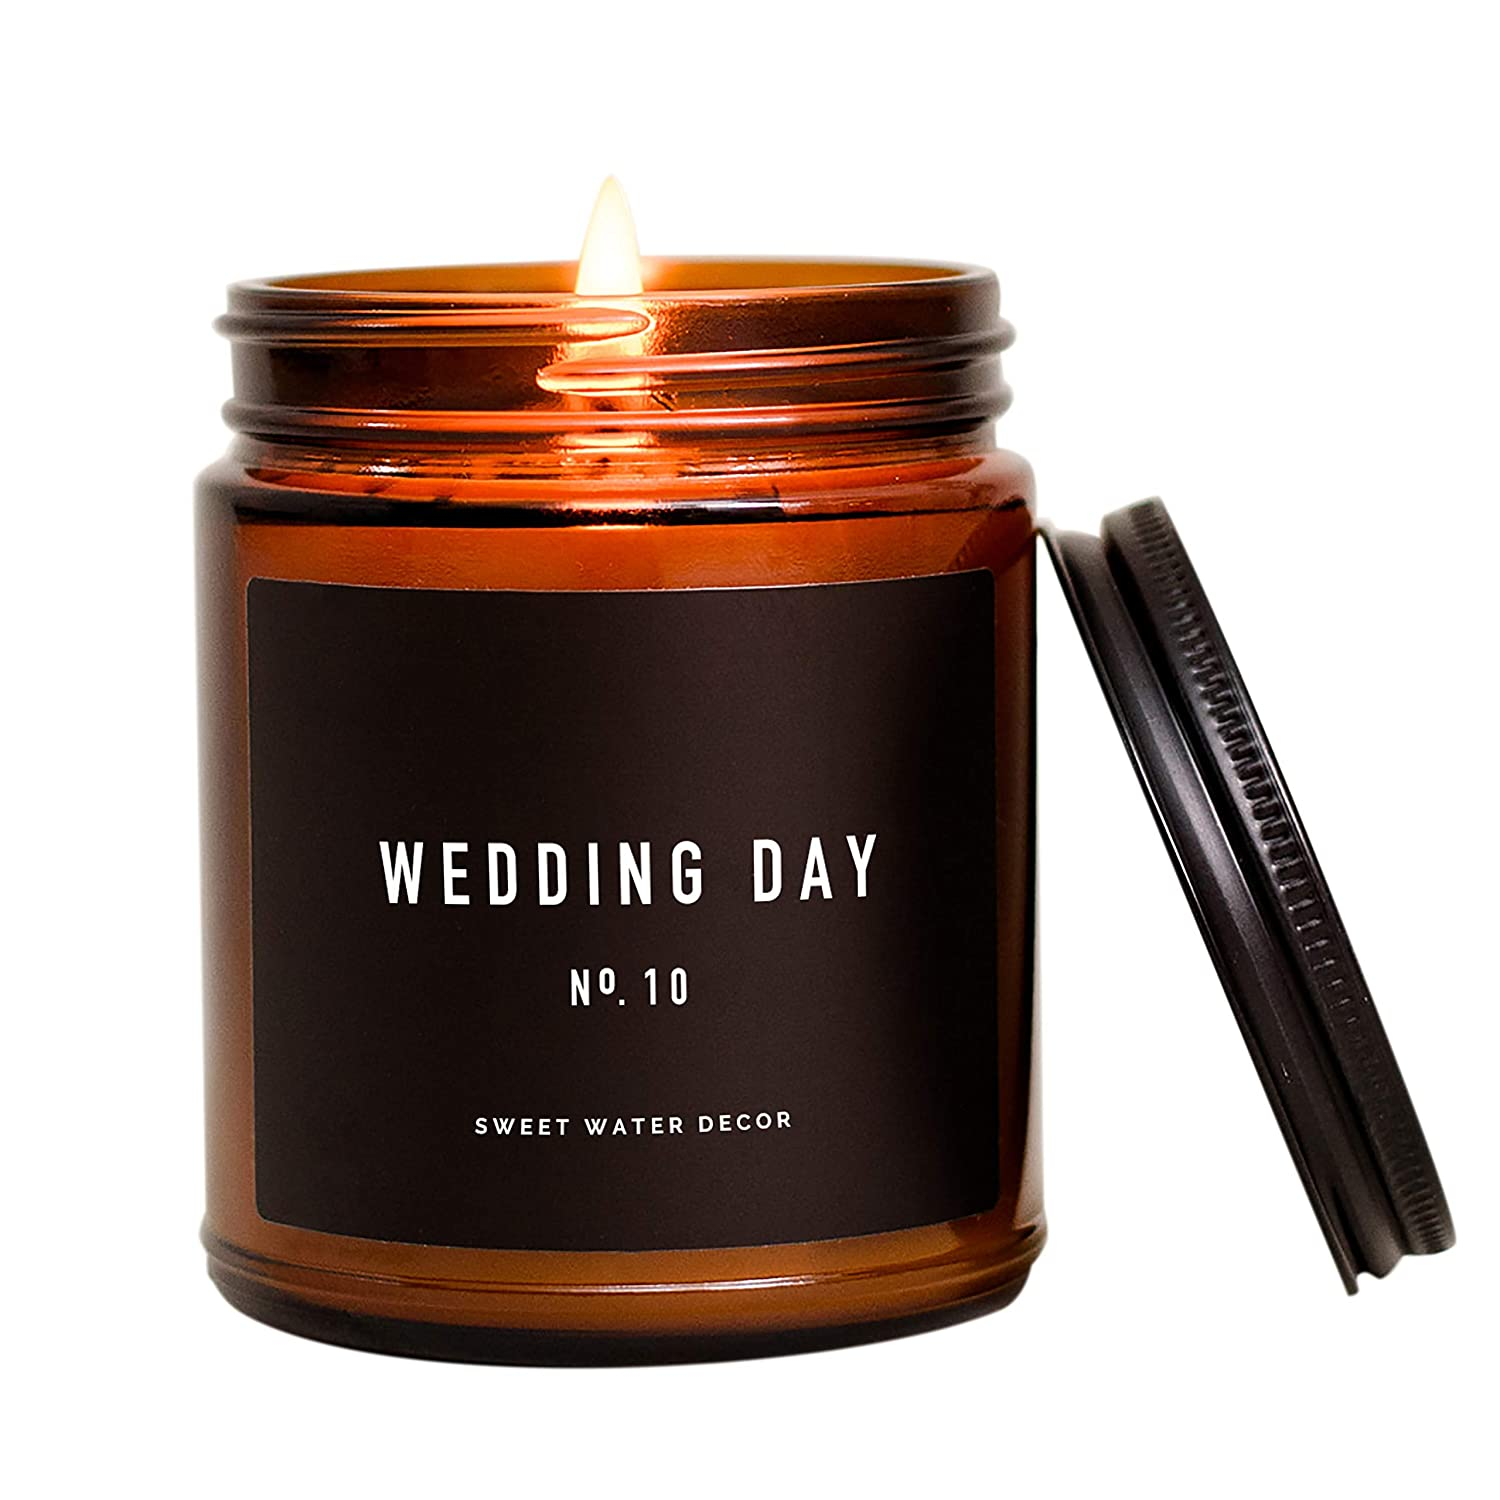 Sweet Water Decor, Wedding Day, Sea Salt, Jasmine, Cream, and Wood Scented Soy Wax Candle for Home   9oz Clear Glass Jar, 40 Hour Burn Time, Made in the USA